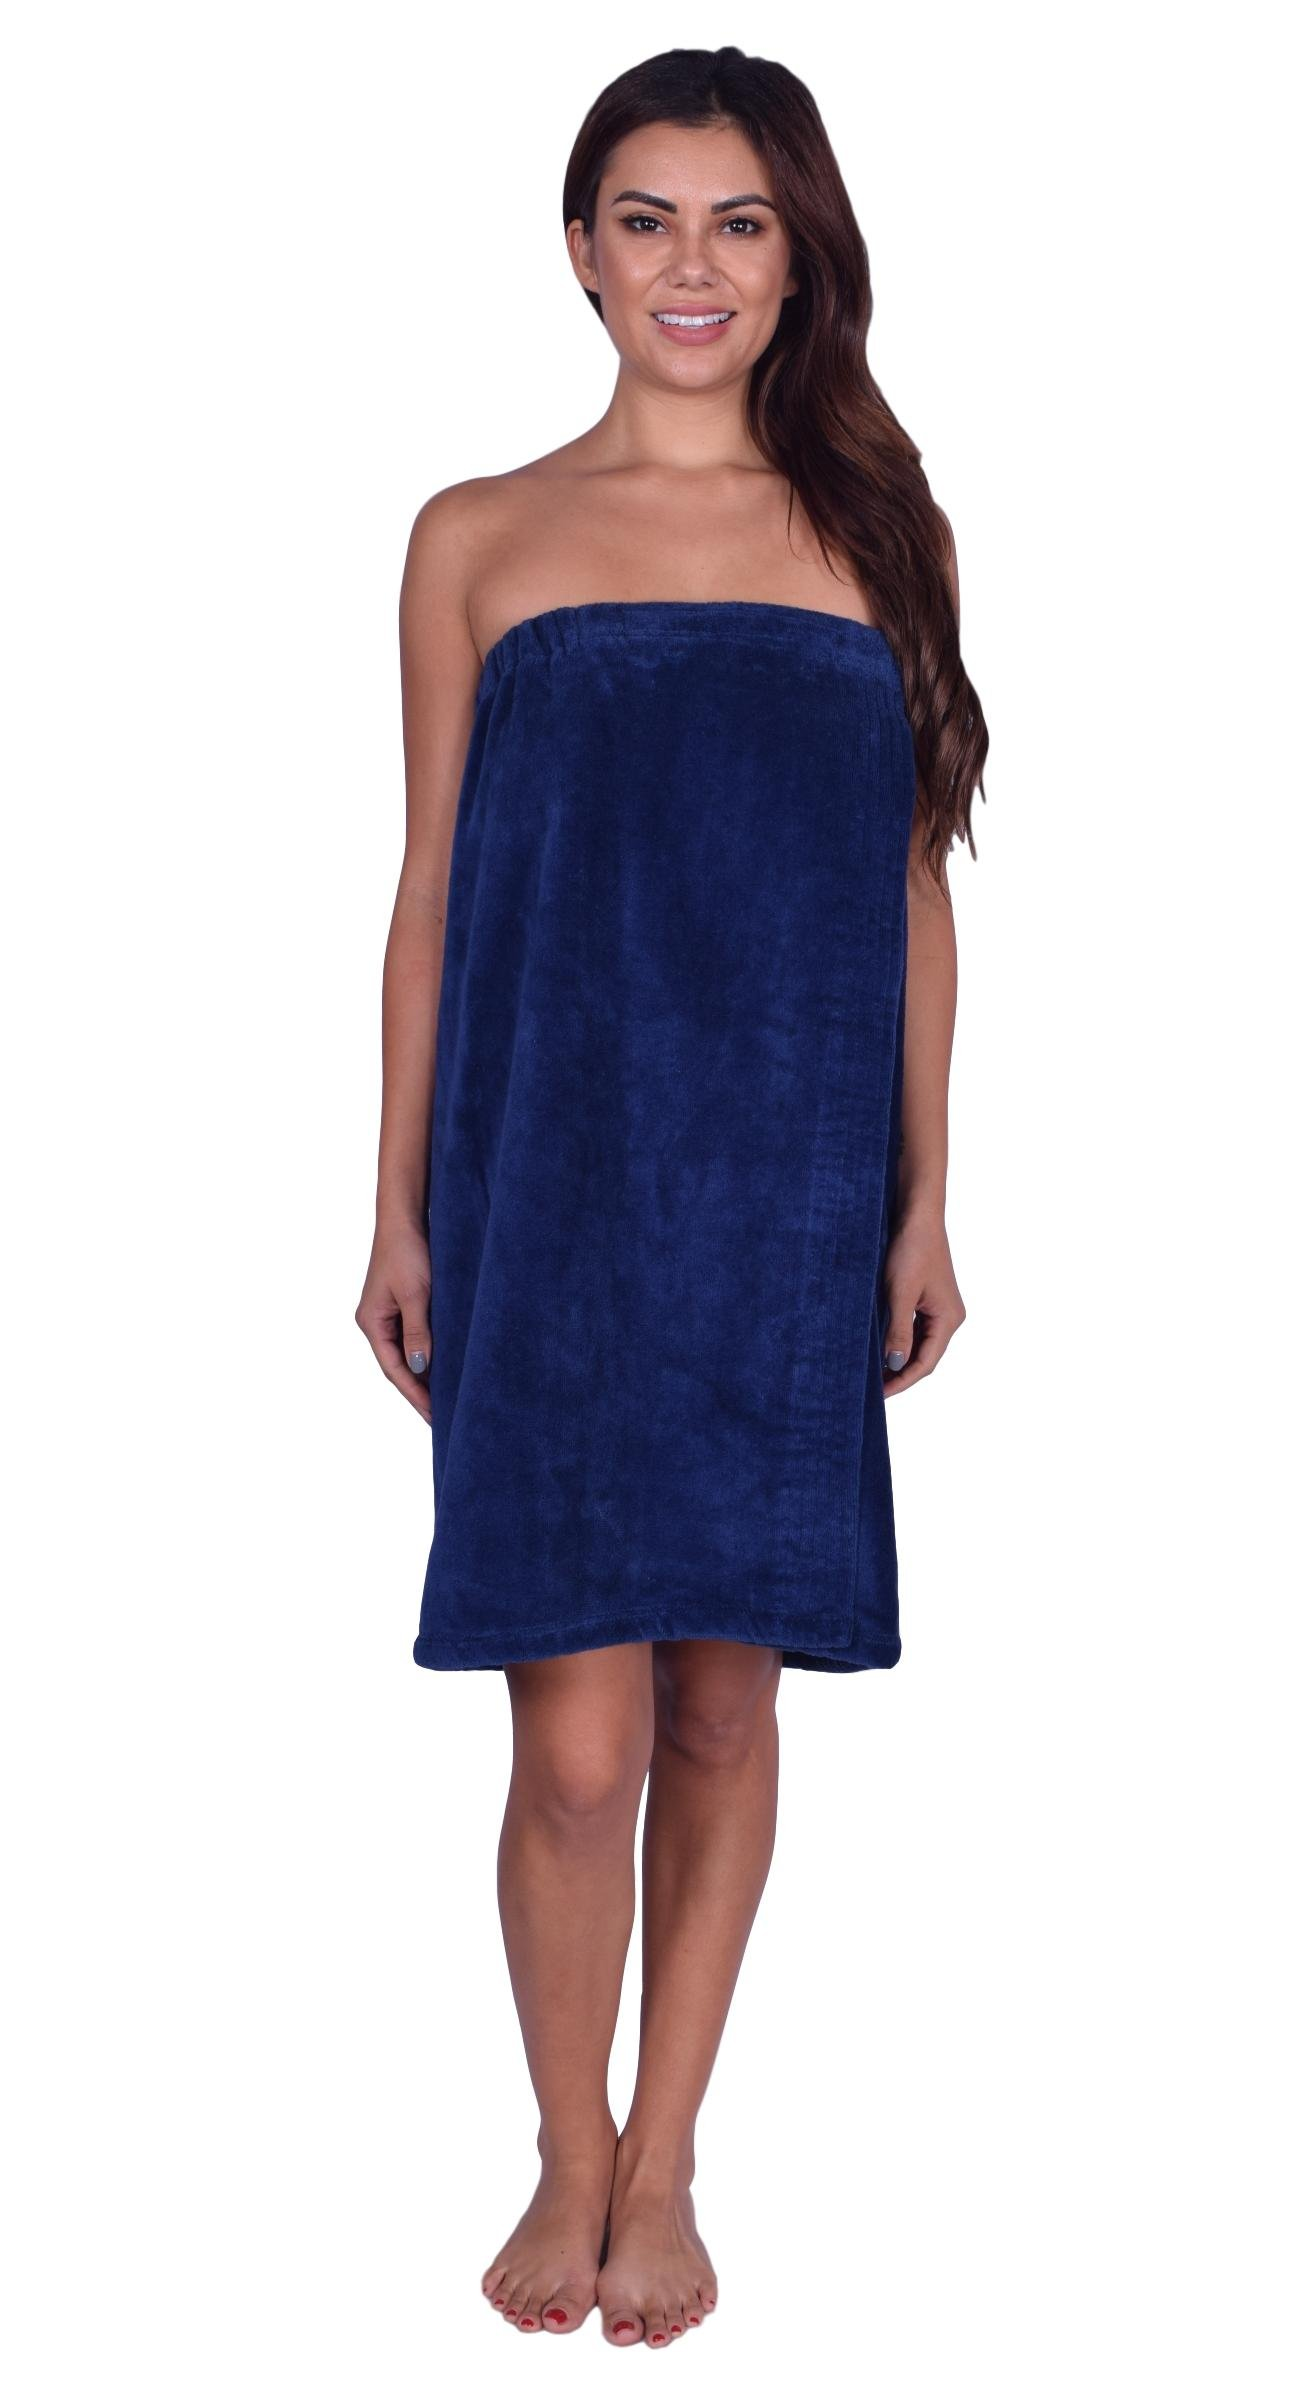 La Calla Women's Bath Wrap -%100 Terry Cotton - Turkish Spa Shower Women Wraps with Adjustable Closure (Navy)